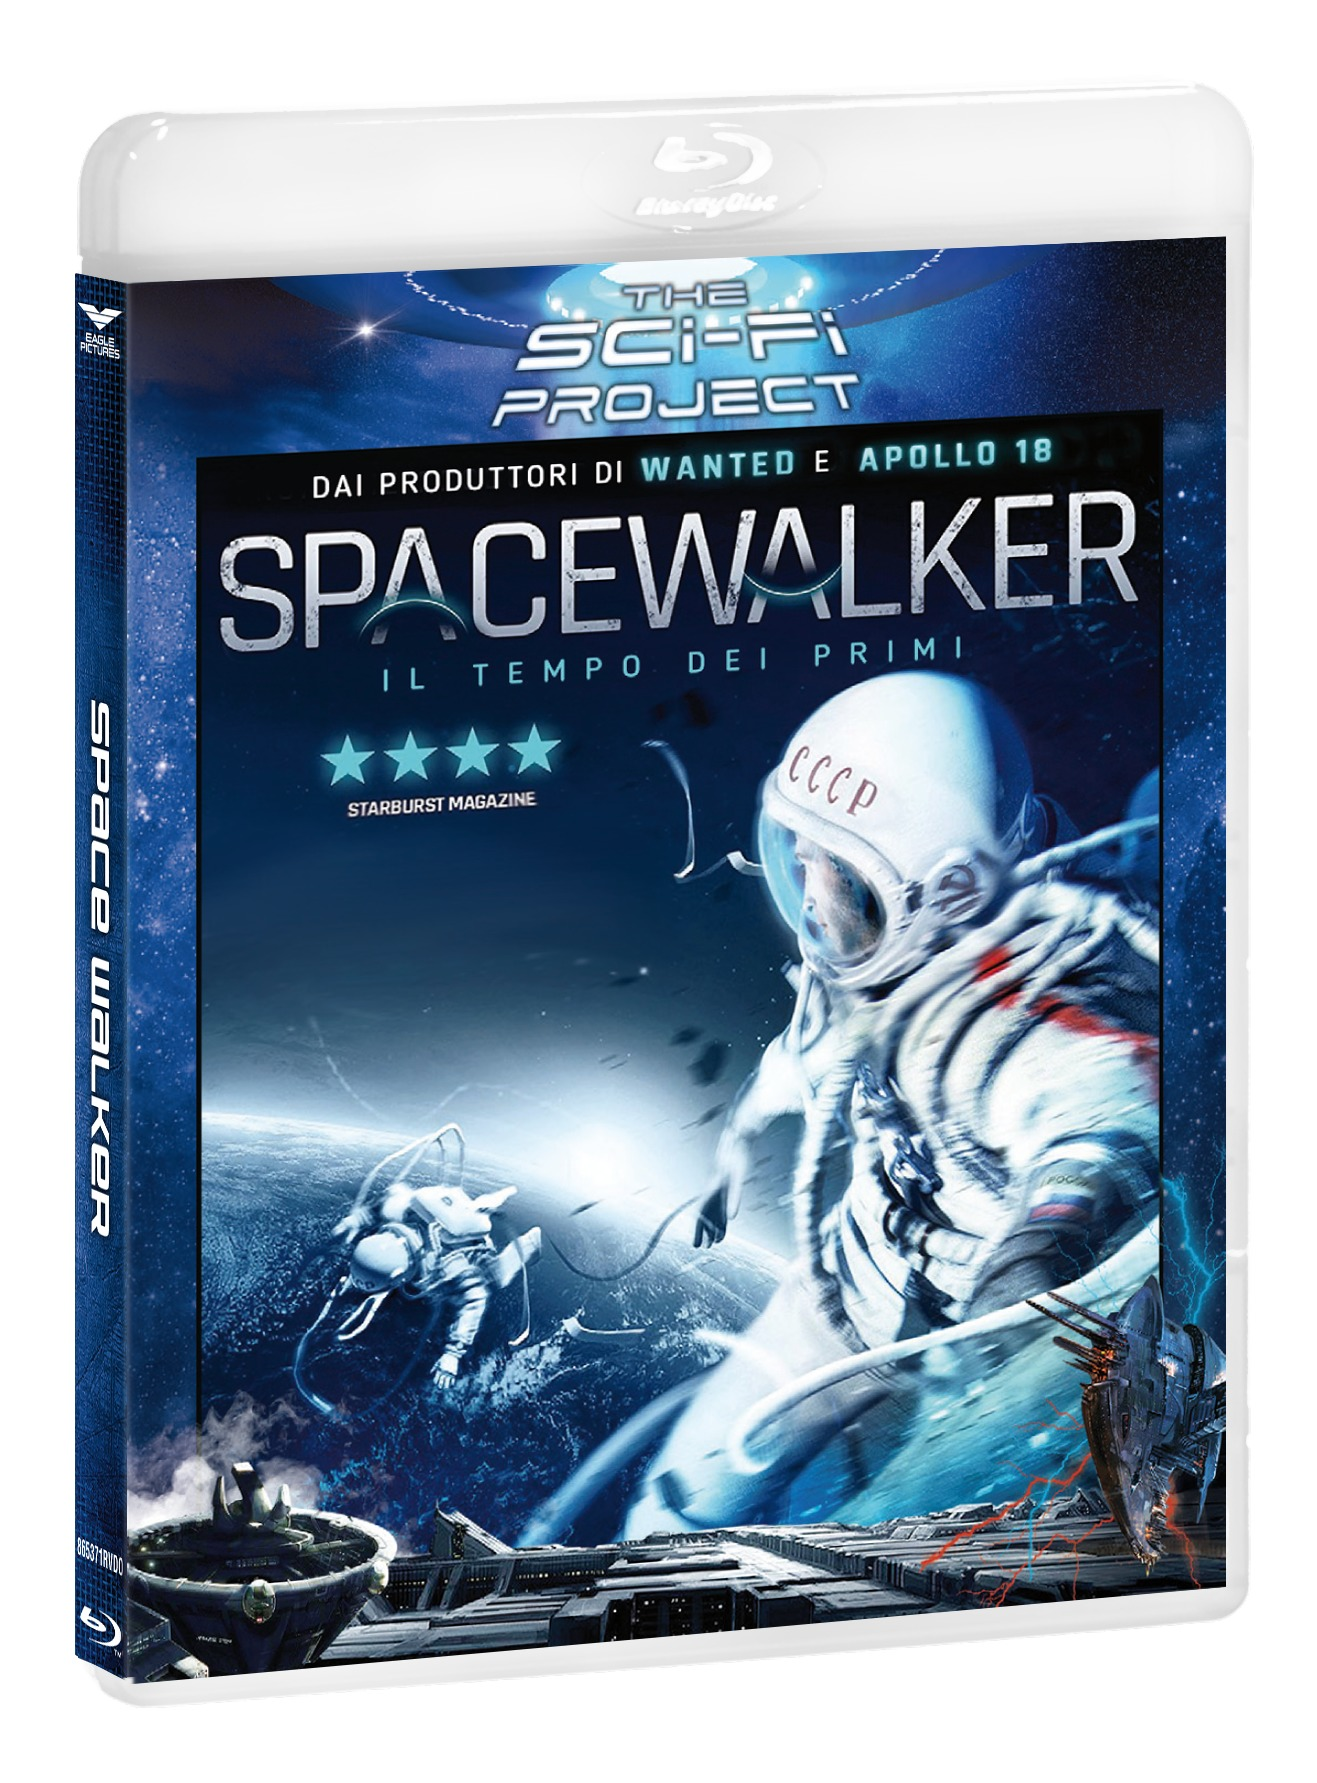 THE SPACEWALKER (SCI-FI PROJECT) - BLU RAY